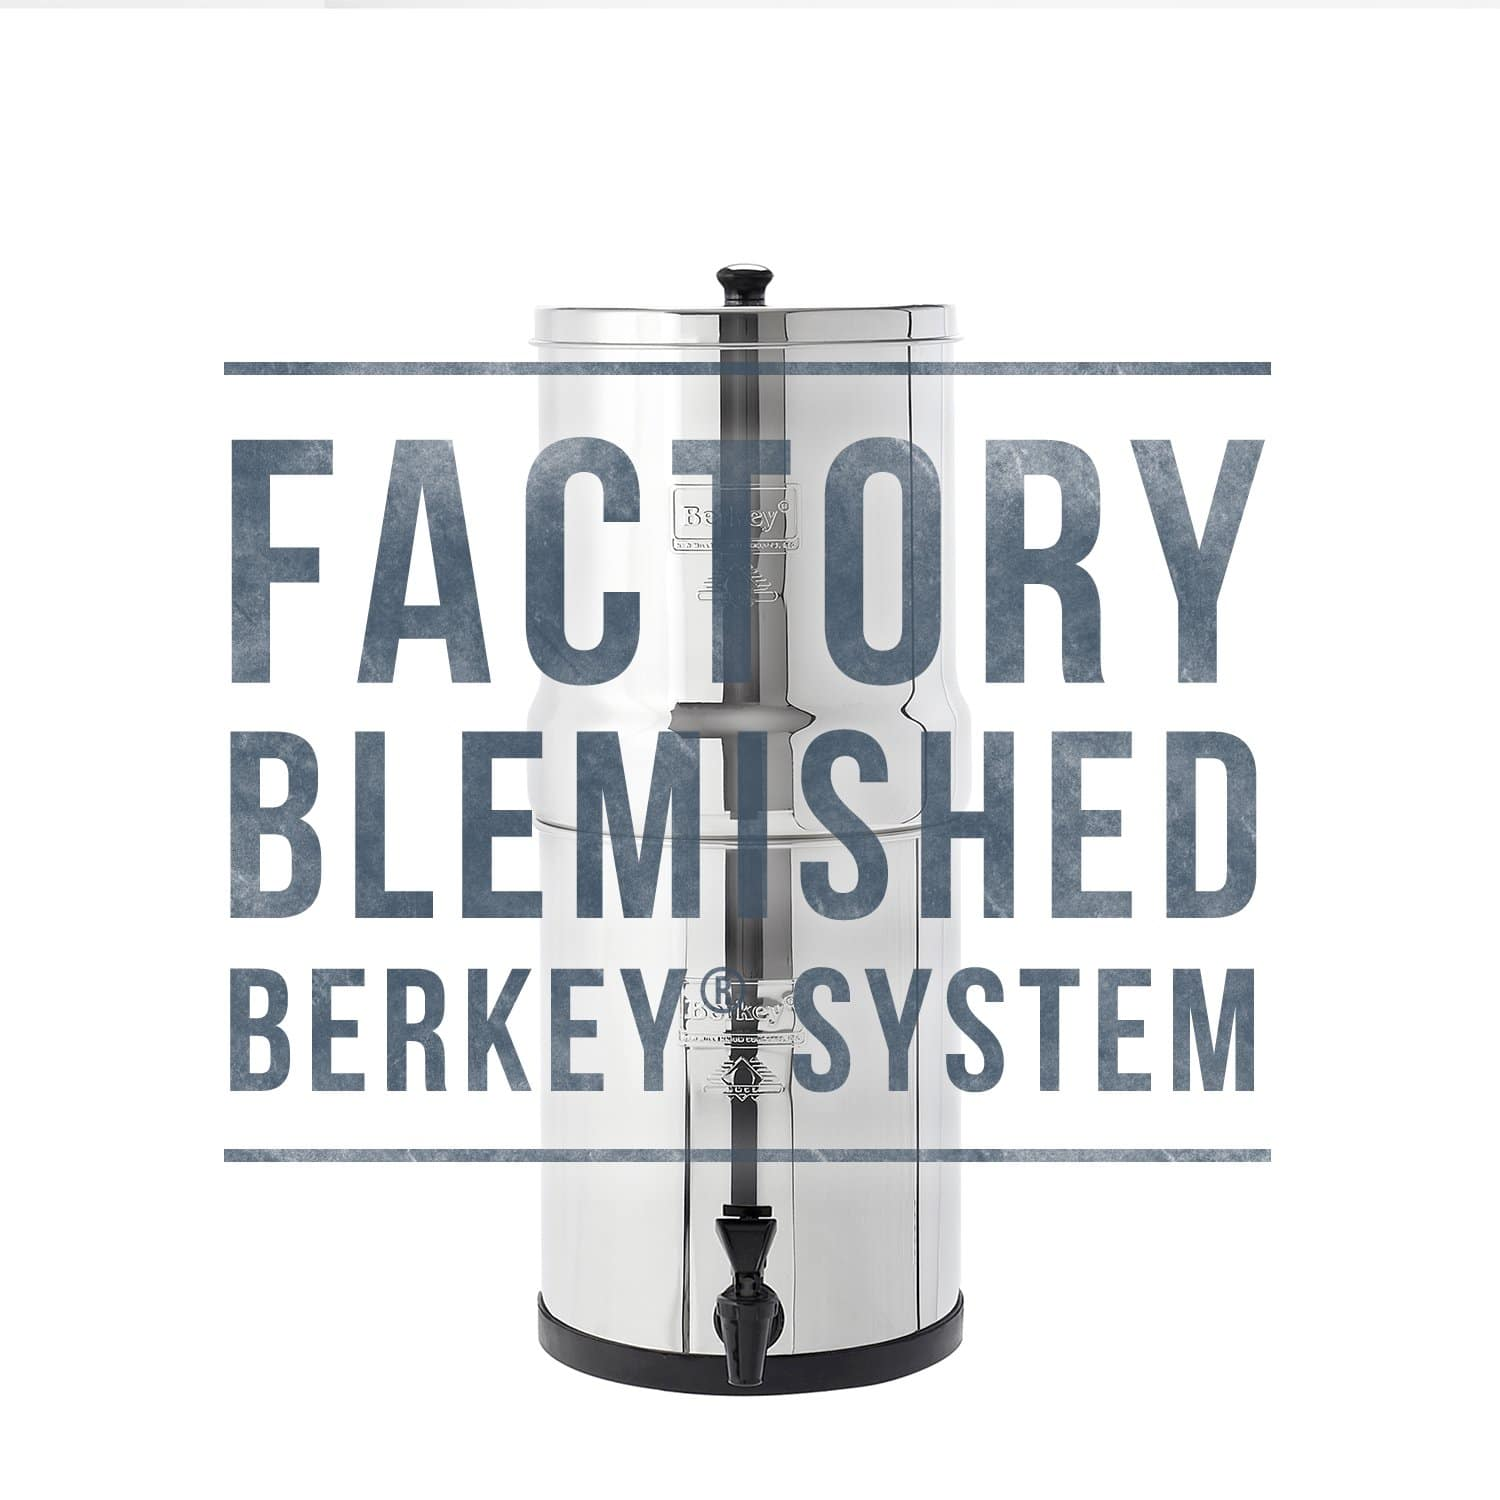 Blemished Imperial Berkey®System - 4.5 Gallon